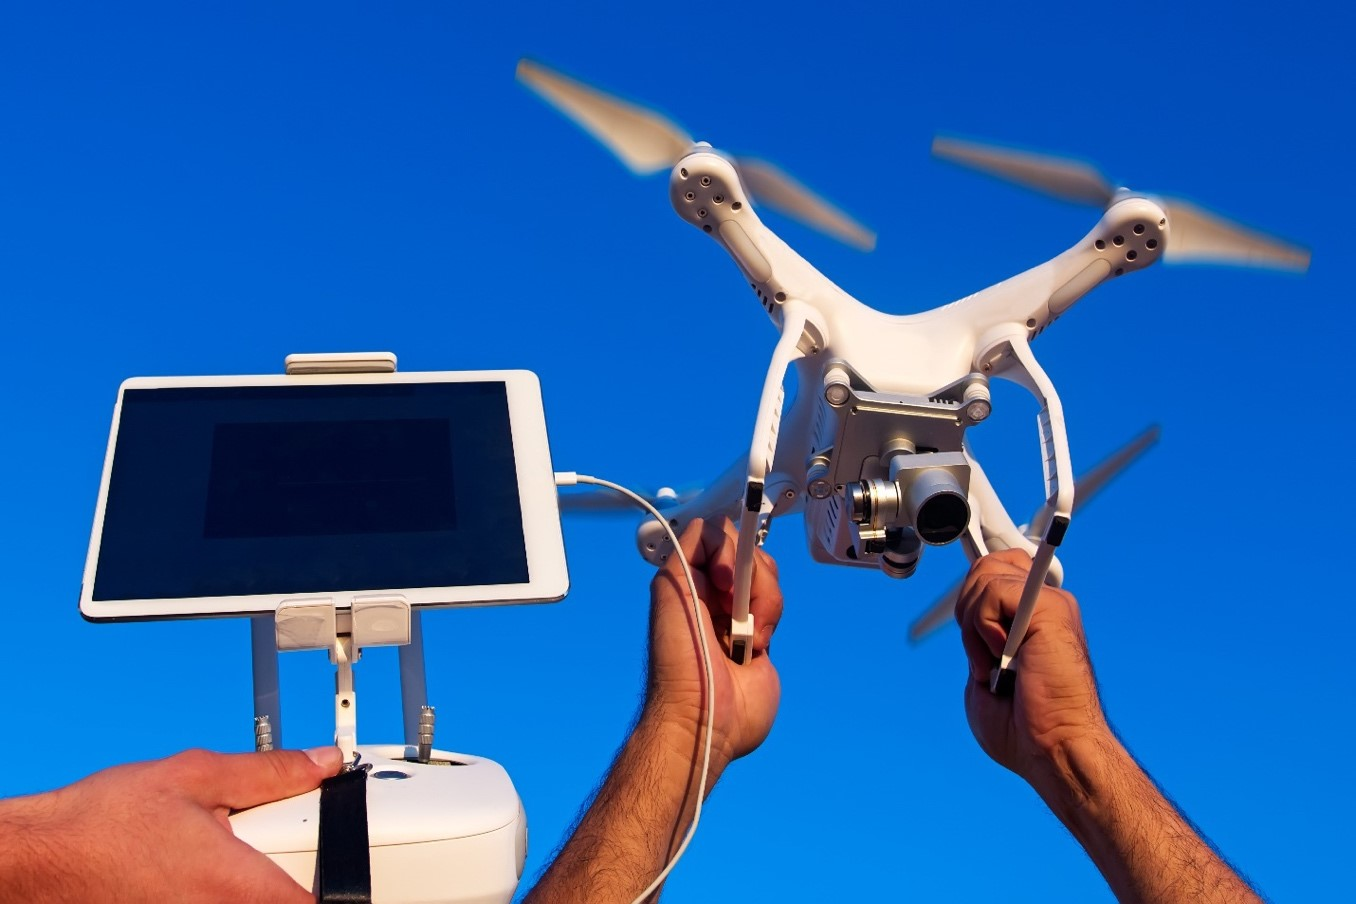 Drone powered by tablet taking off from hands